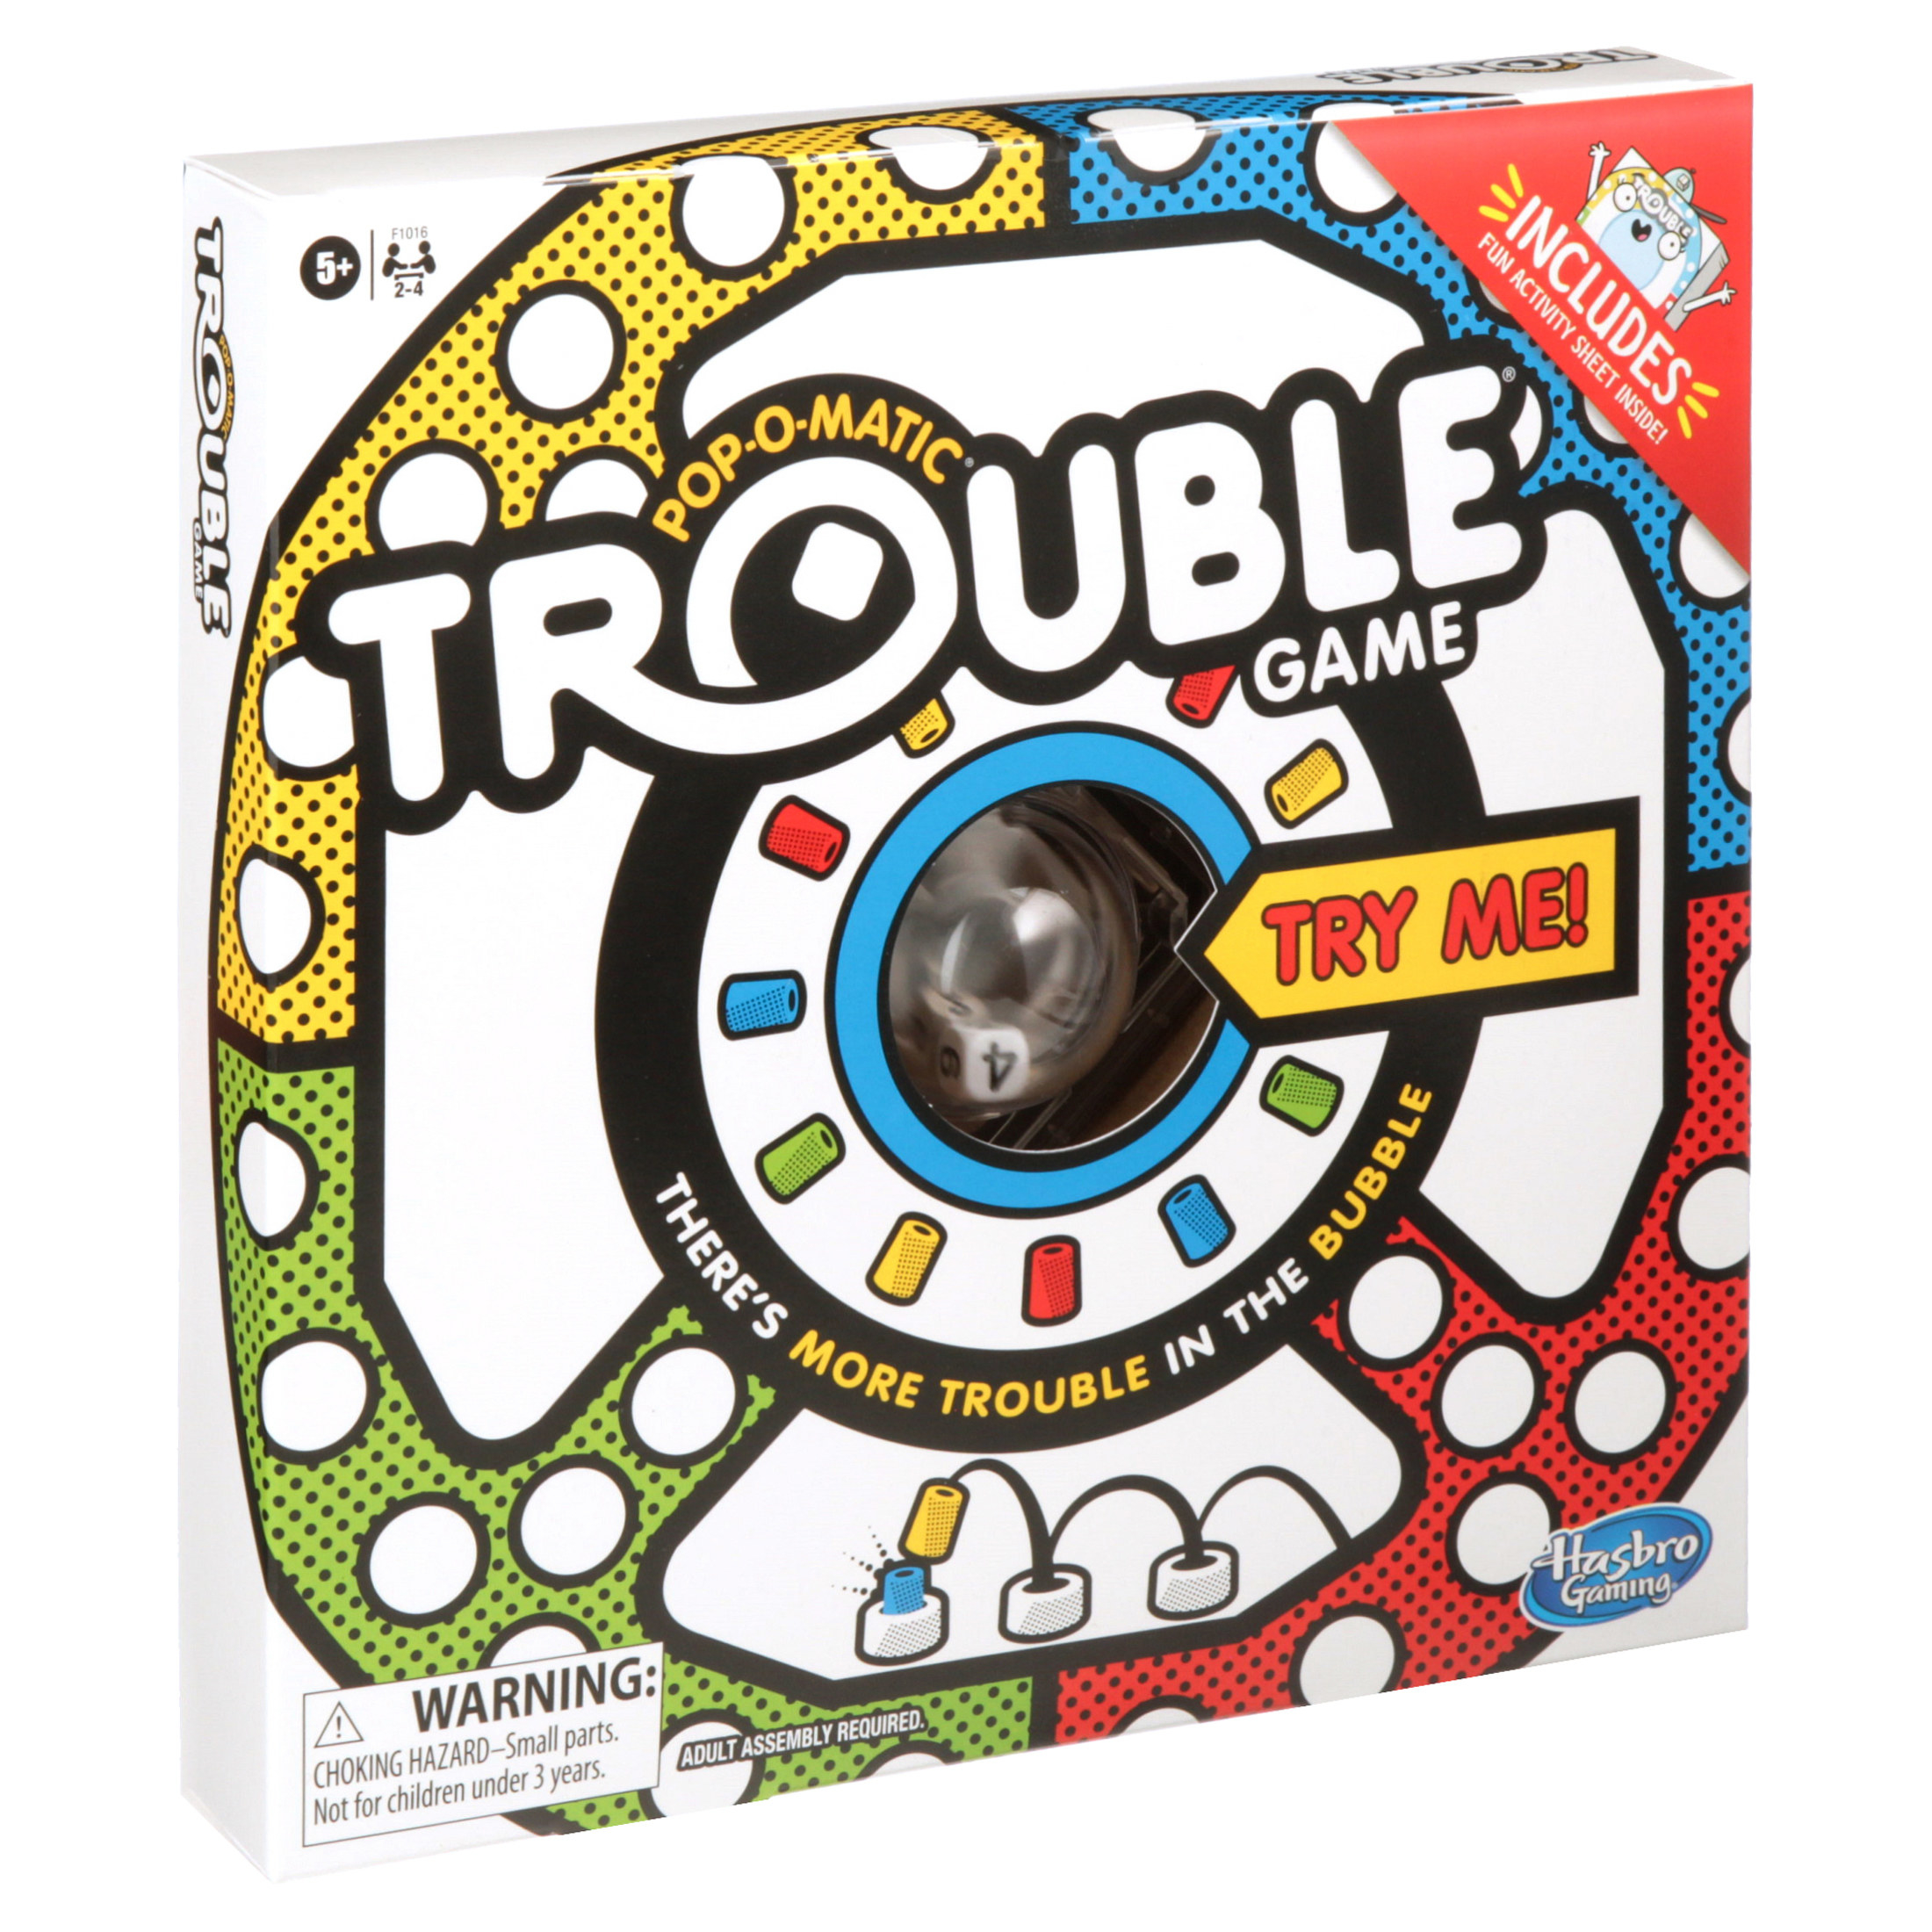 The brightly colored game box